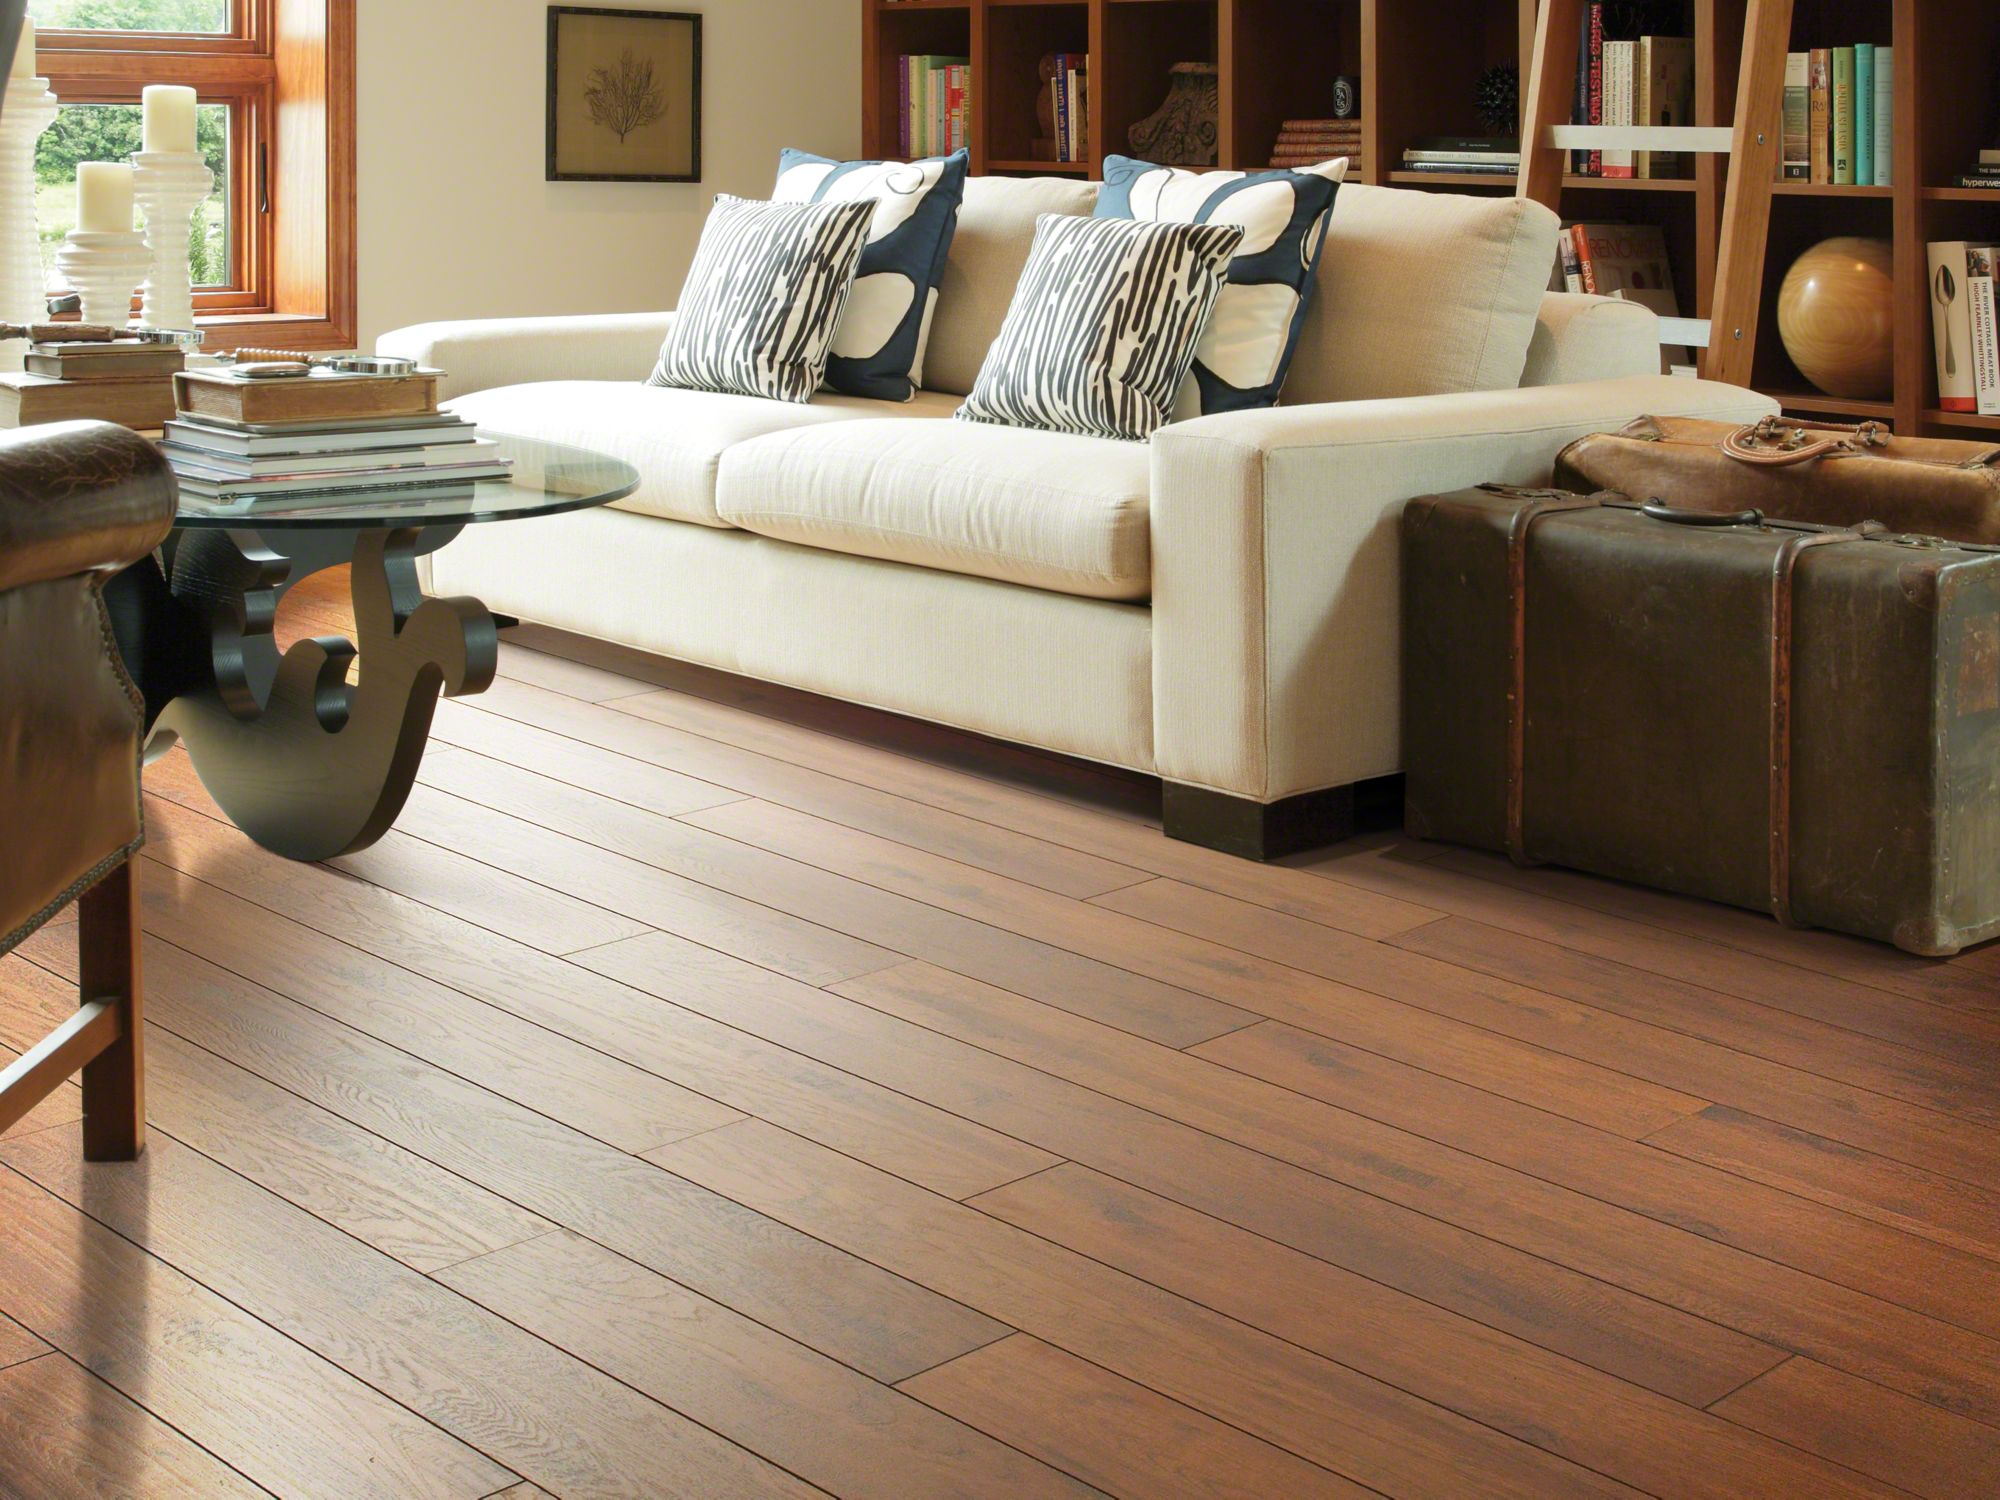 Why is wood laminate flooring popular?